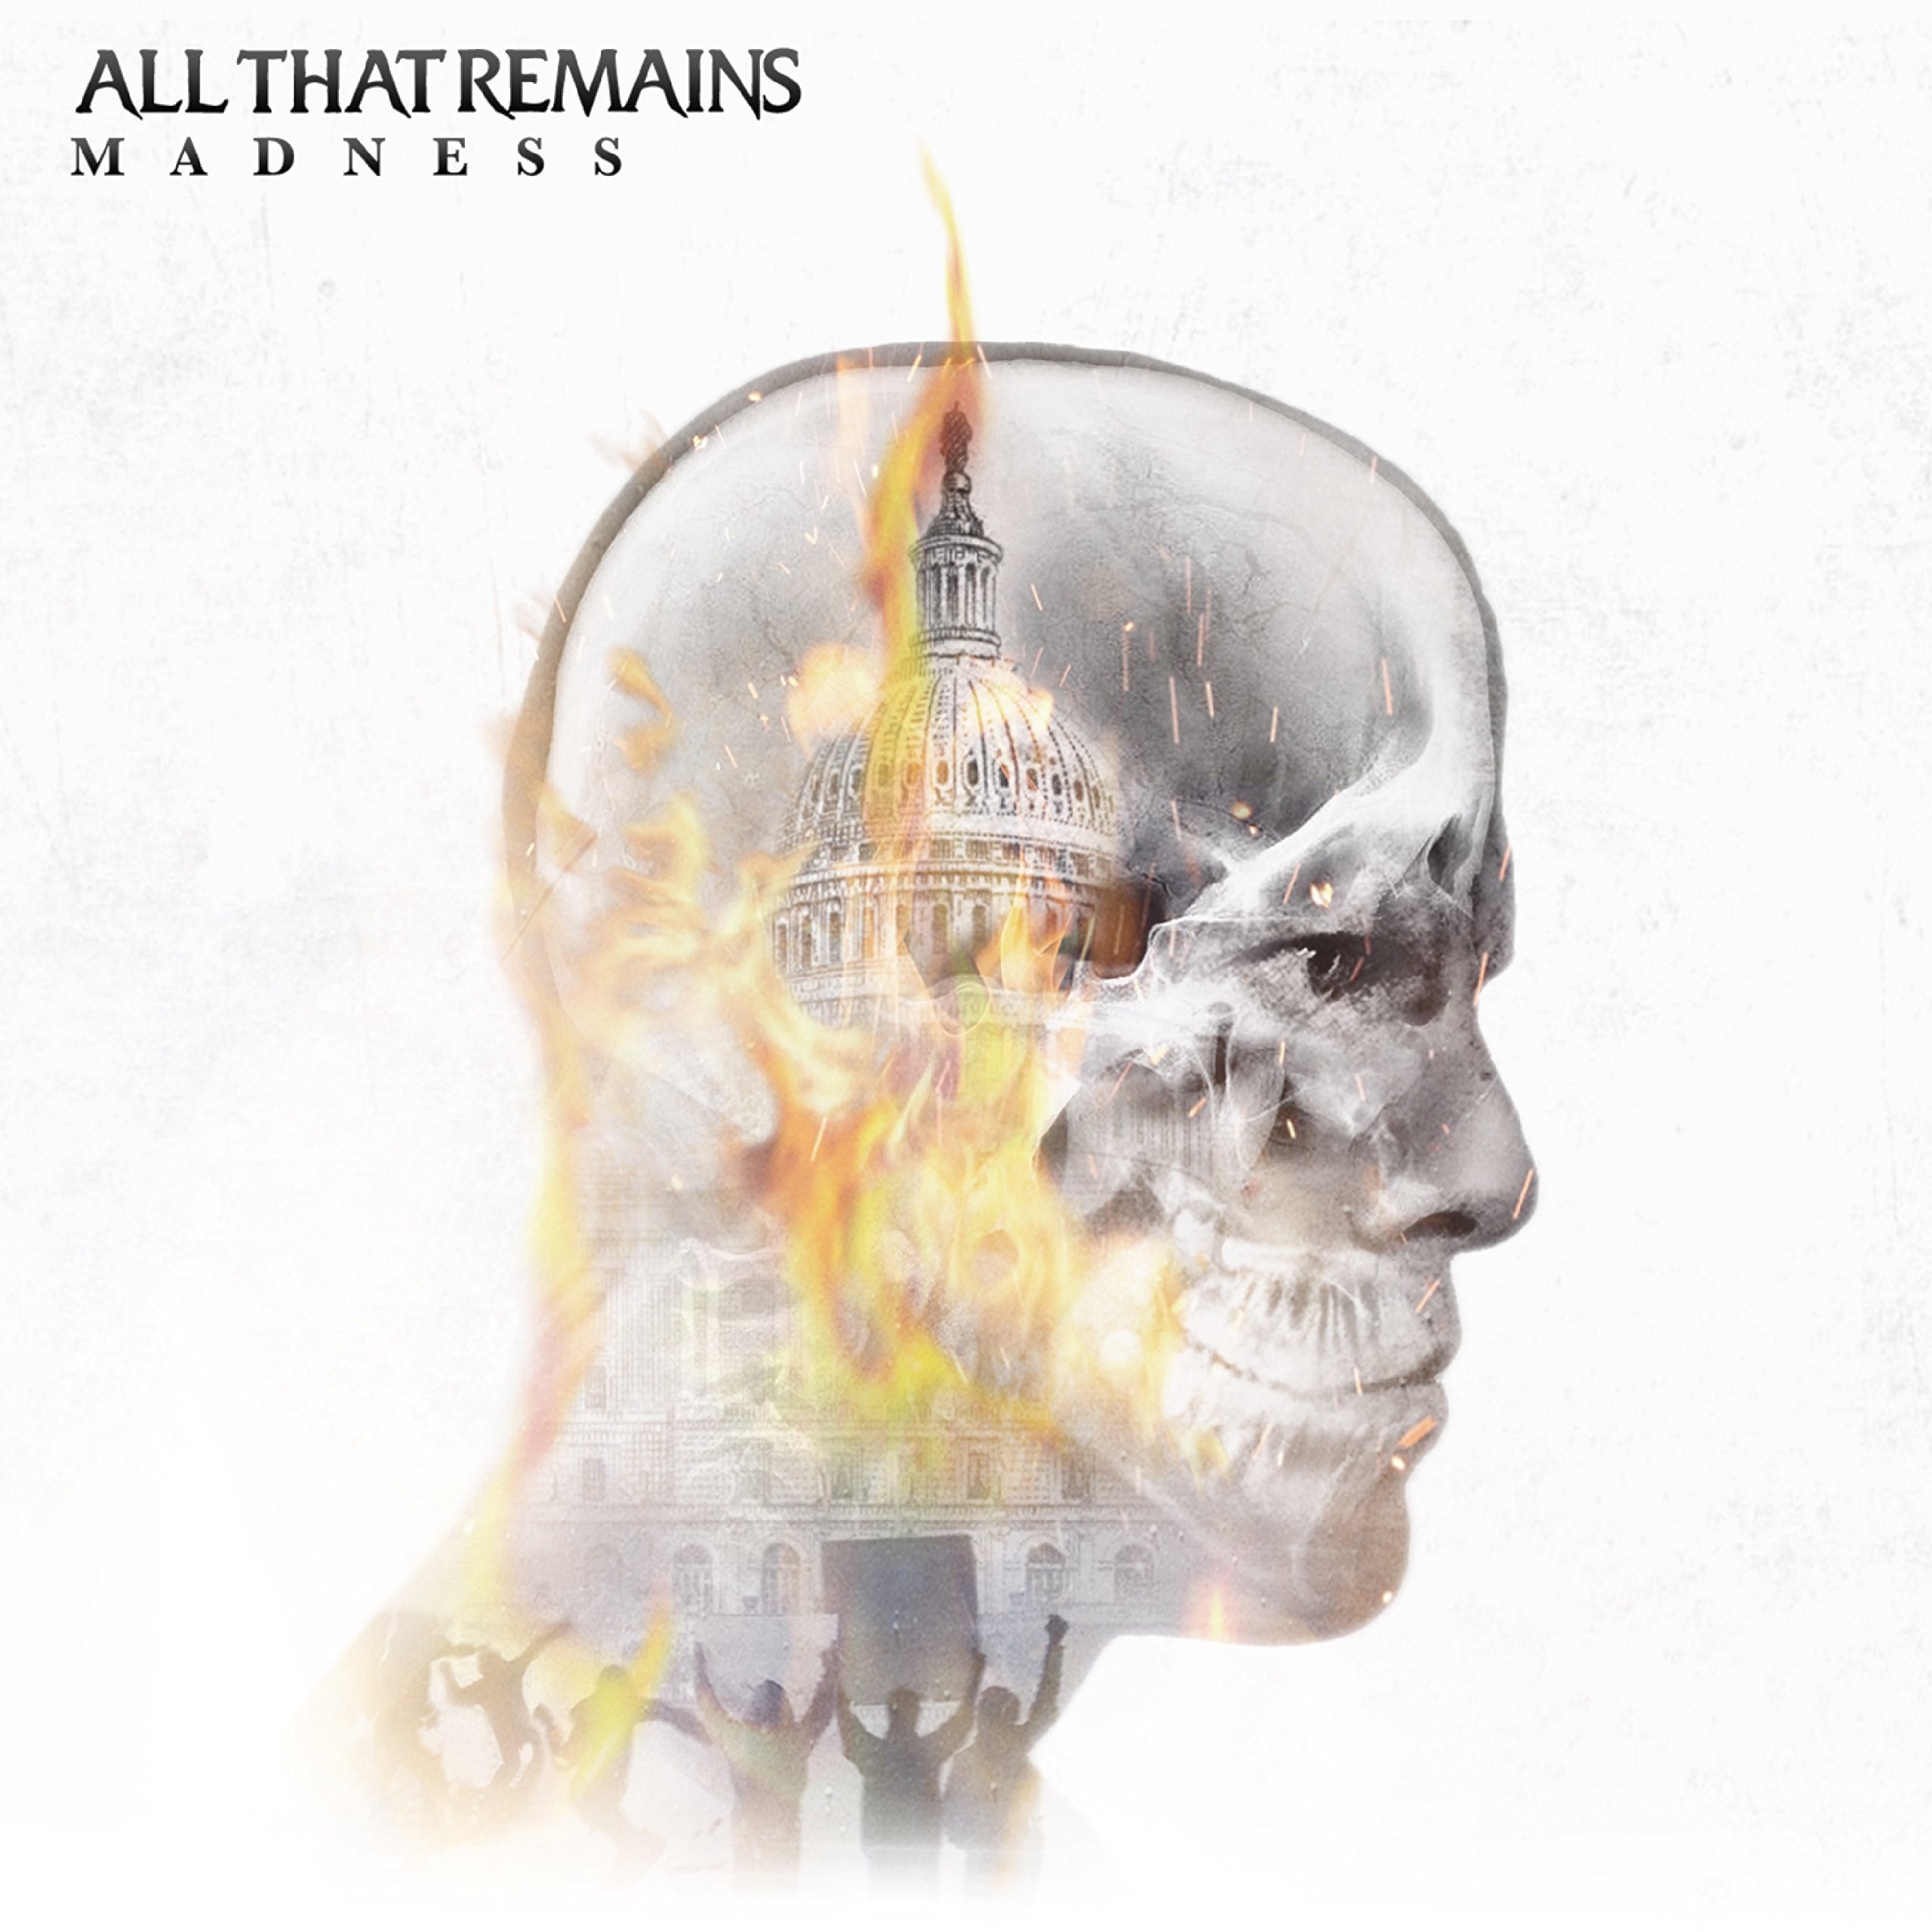 All That Remains - Madness (2PC)